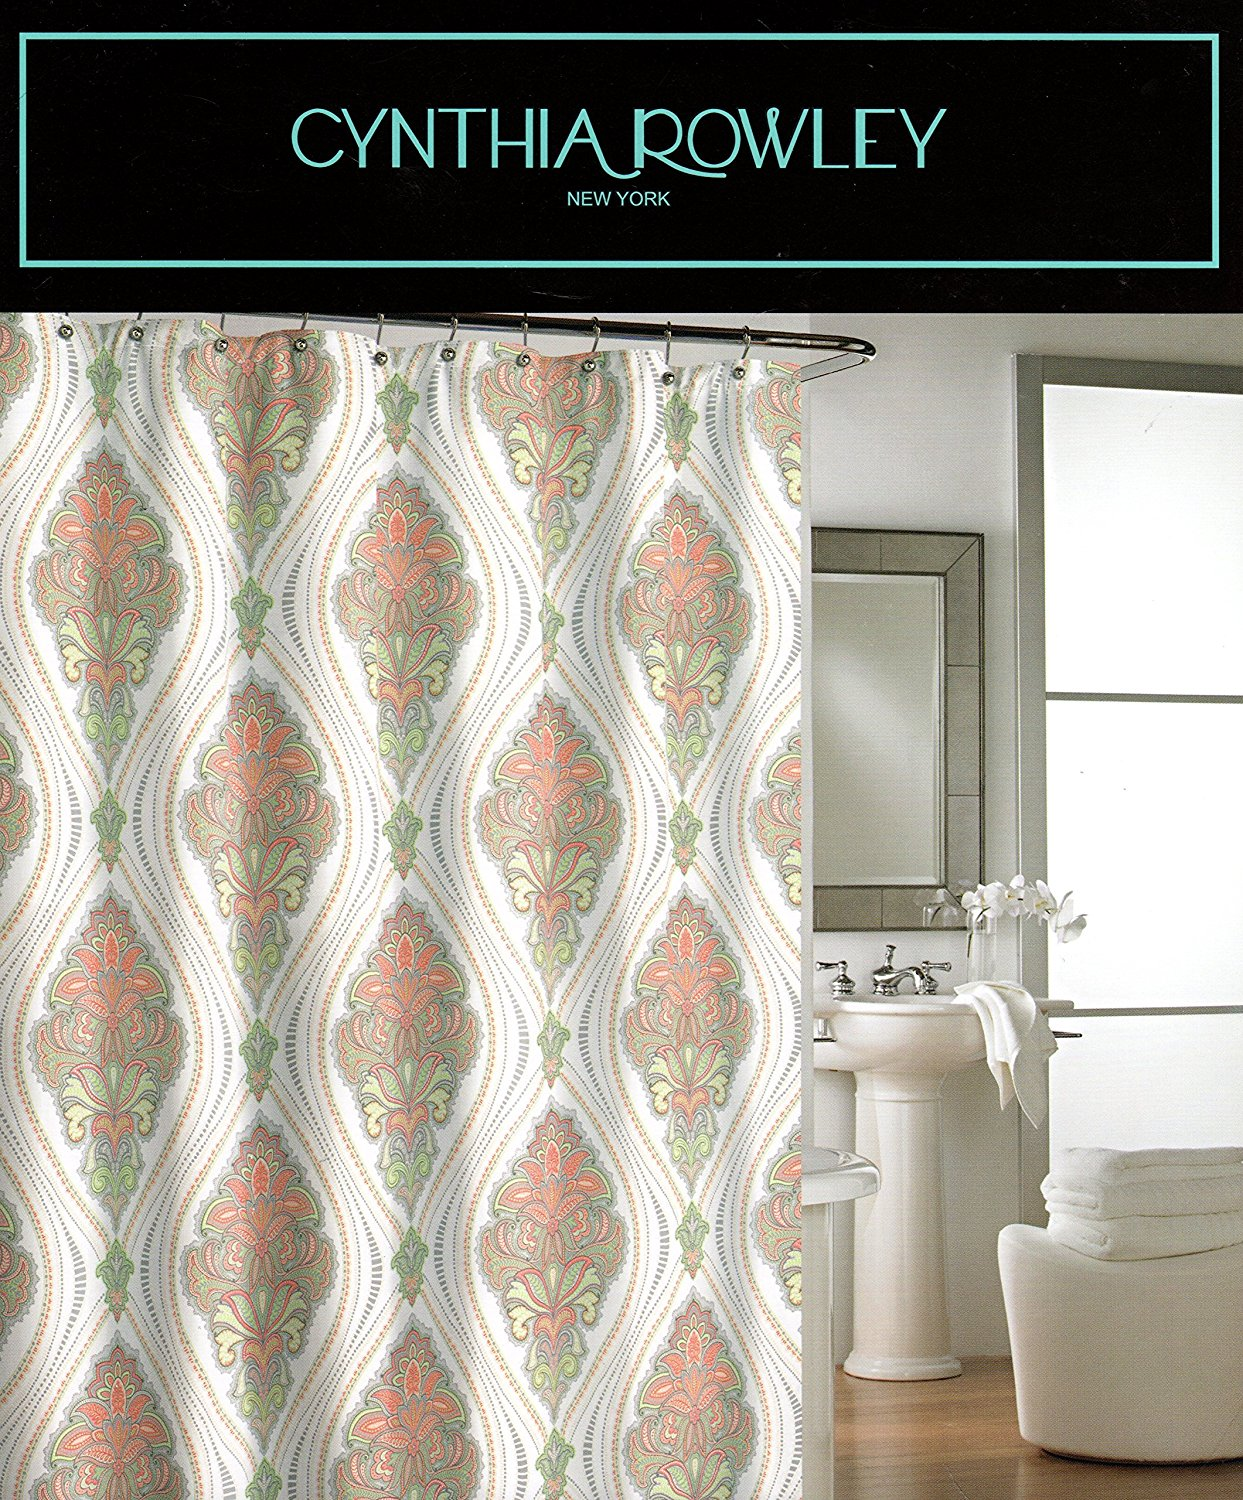 Cynthia Rowley Ornate Medallion Fabric Shower Curtain 72 Inch By 72 Inch Damask Floral Scrolls Shower Curtain Gray Orange Green Beige Grey White